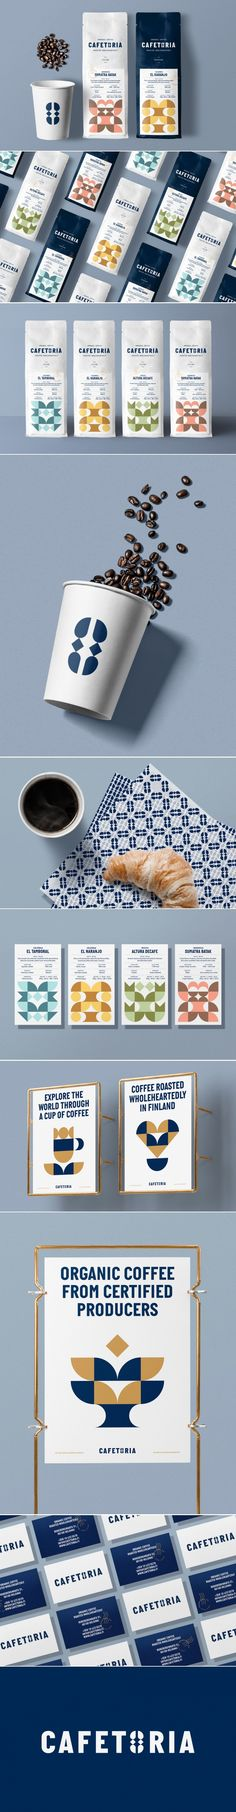 Latin American and Scandinavian Elements Come Together In This Coffee Packaging — The Dieline | Packaging & Branding Design & Innovation News